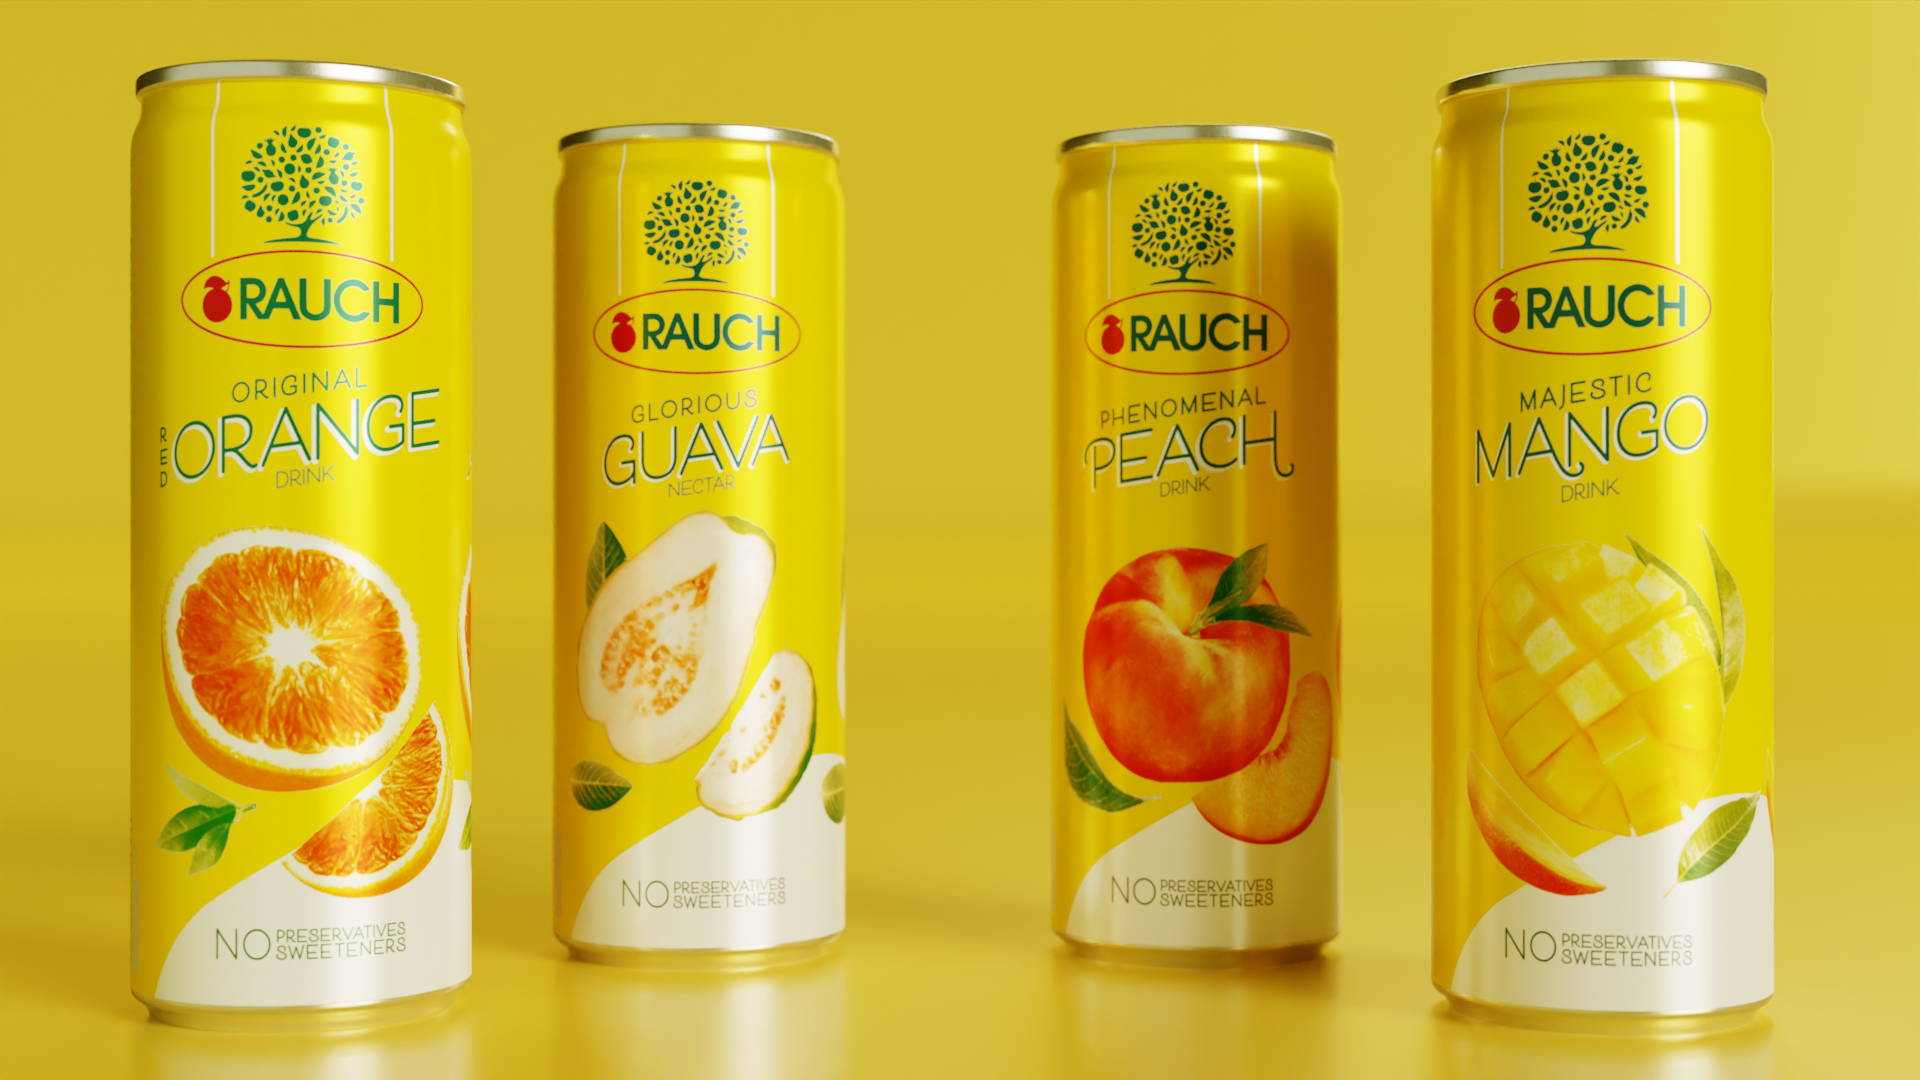 Rauch yellow cans lined up